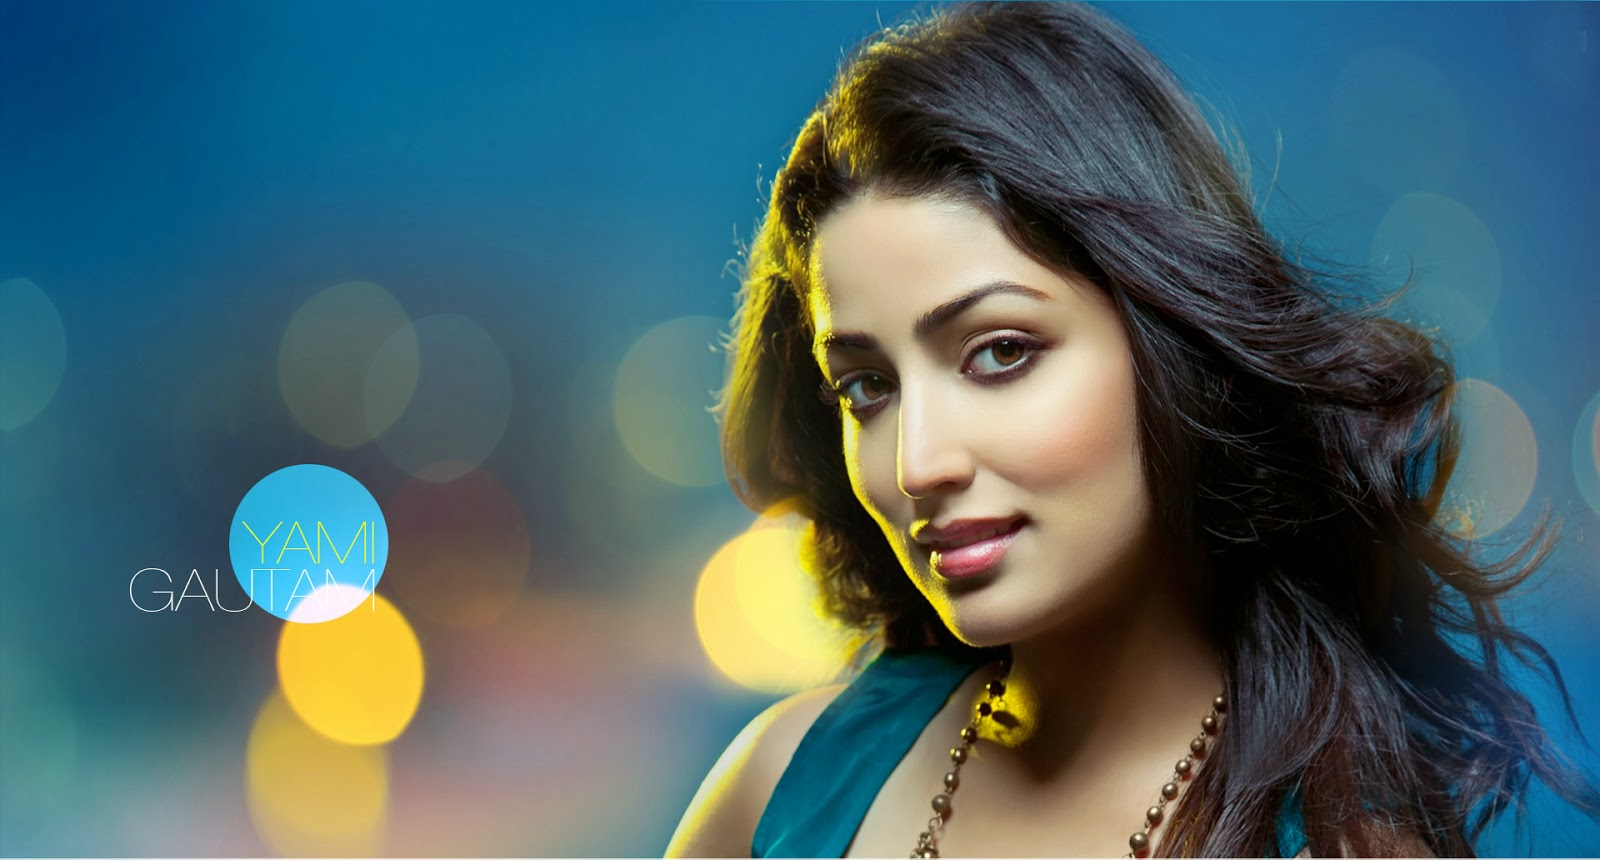 Vikey Donar Fame Heroine Yami Gautam hot Latest HD Wallpaper